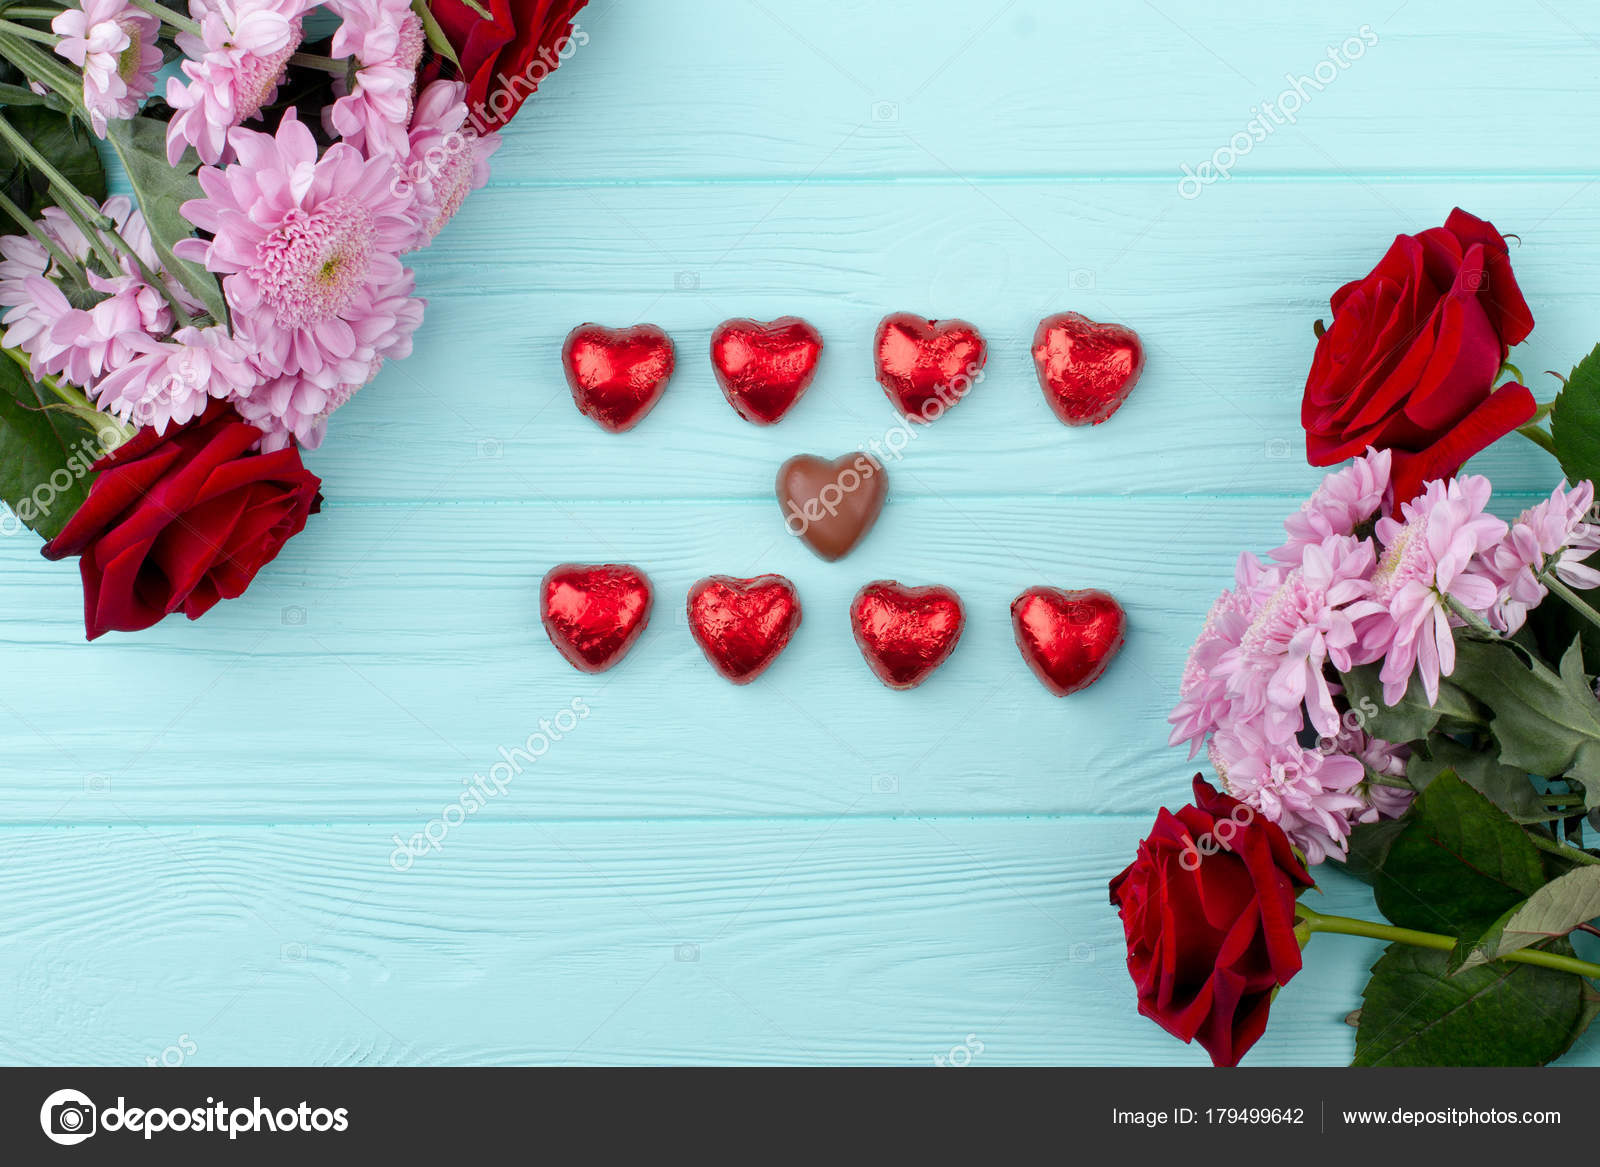 Beautiful flowers and heart shaped chocolate stock photo beautiful flowers and heart shaped chocolate valentines day flowers and chocolate hearts on wooden background top view happy valentines day izmirmasajfo Choice Image